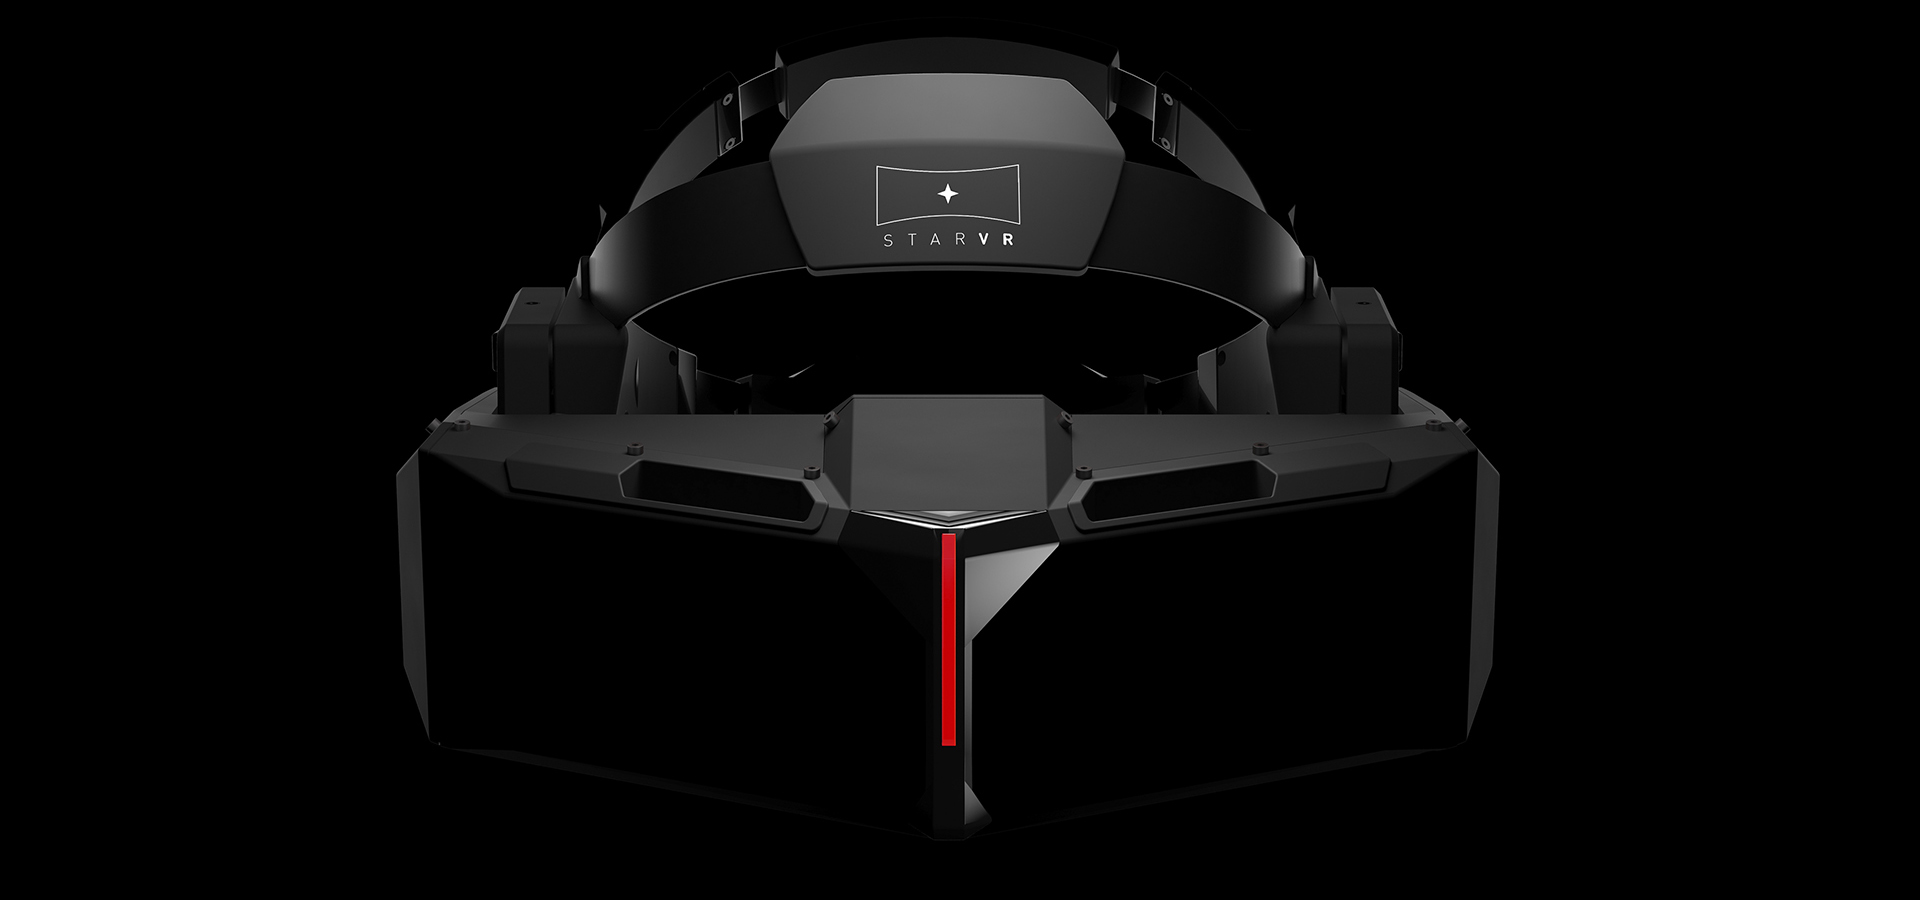 Collaborating with Tobii, Integrating Eye Tracking Into StarVR